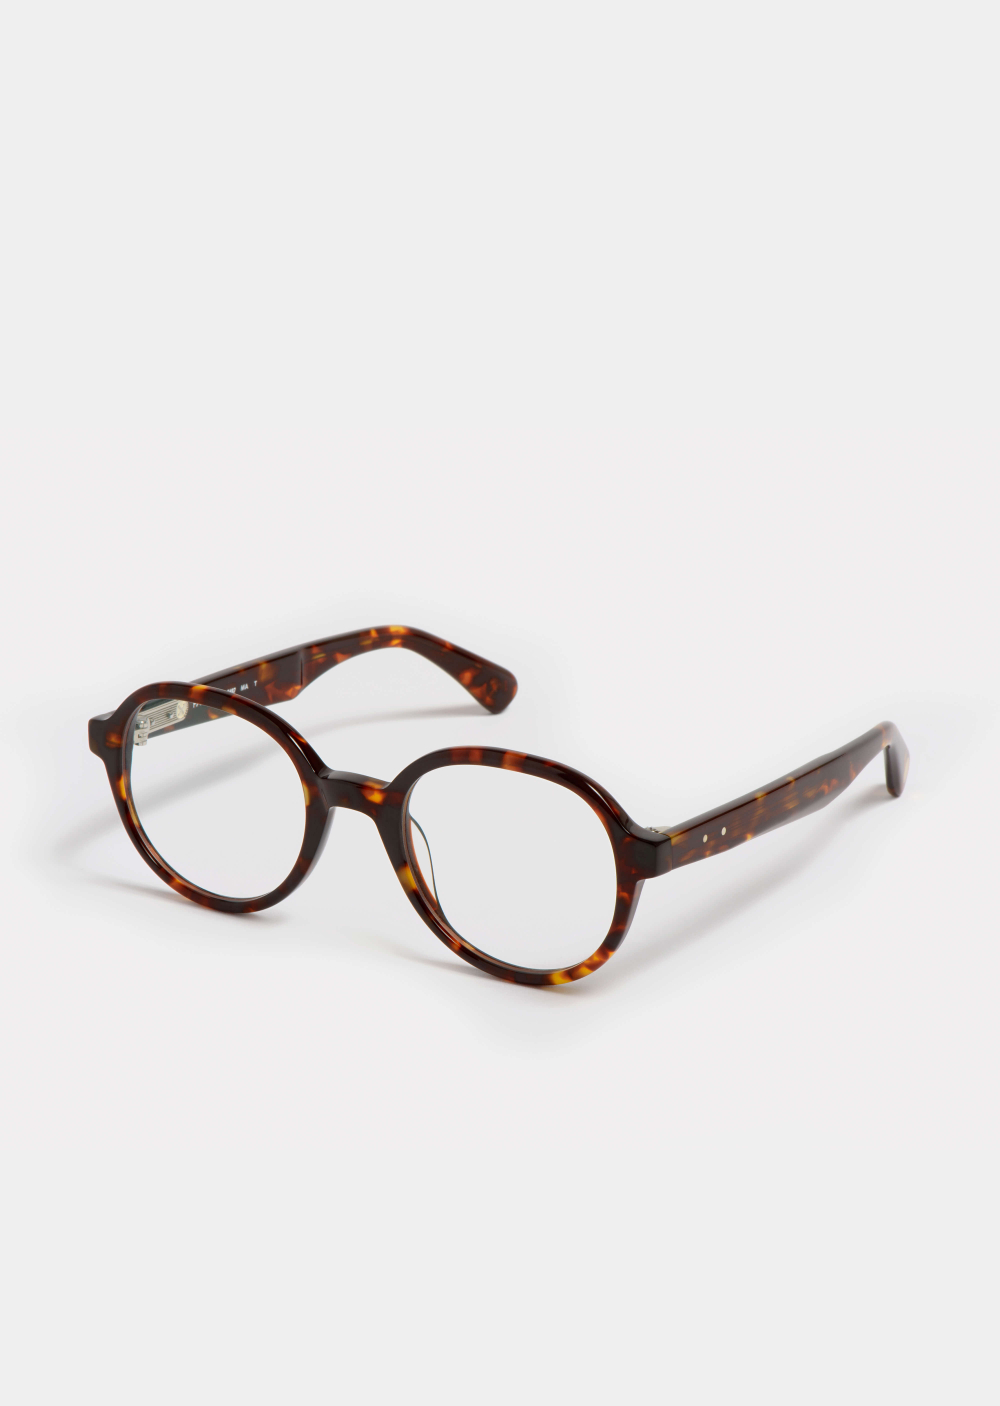 PETER AND MAY -  - S88 Mia tortoise